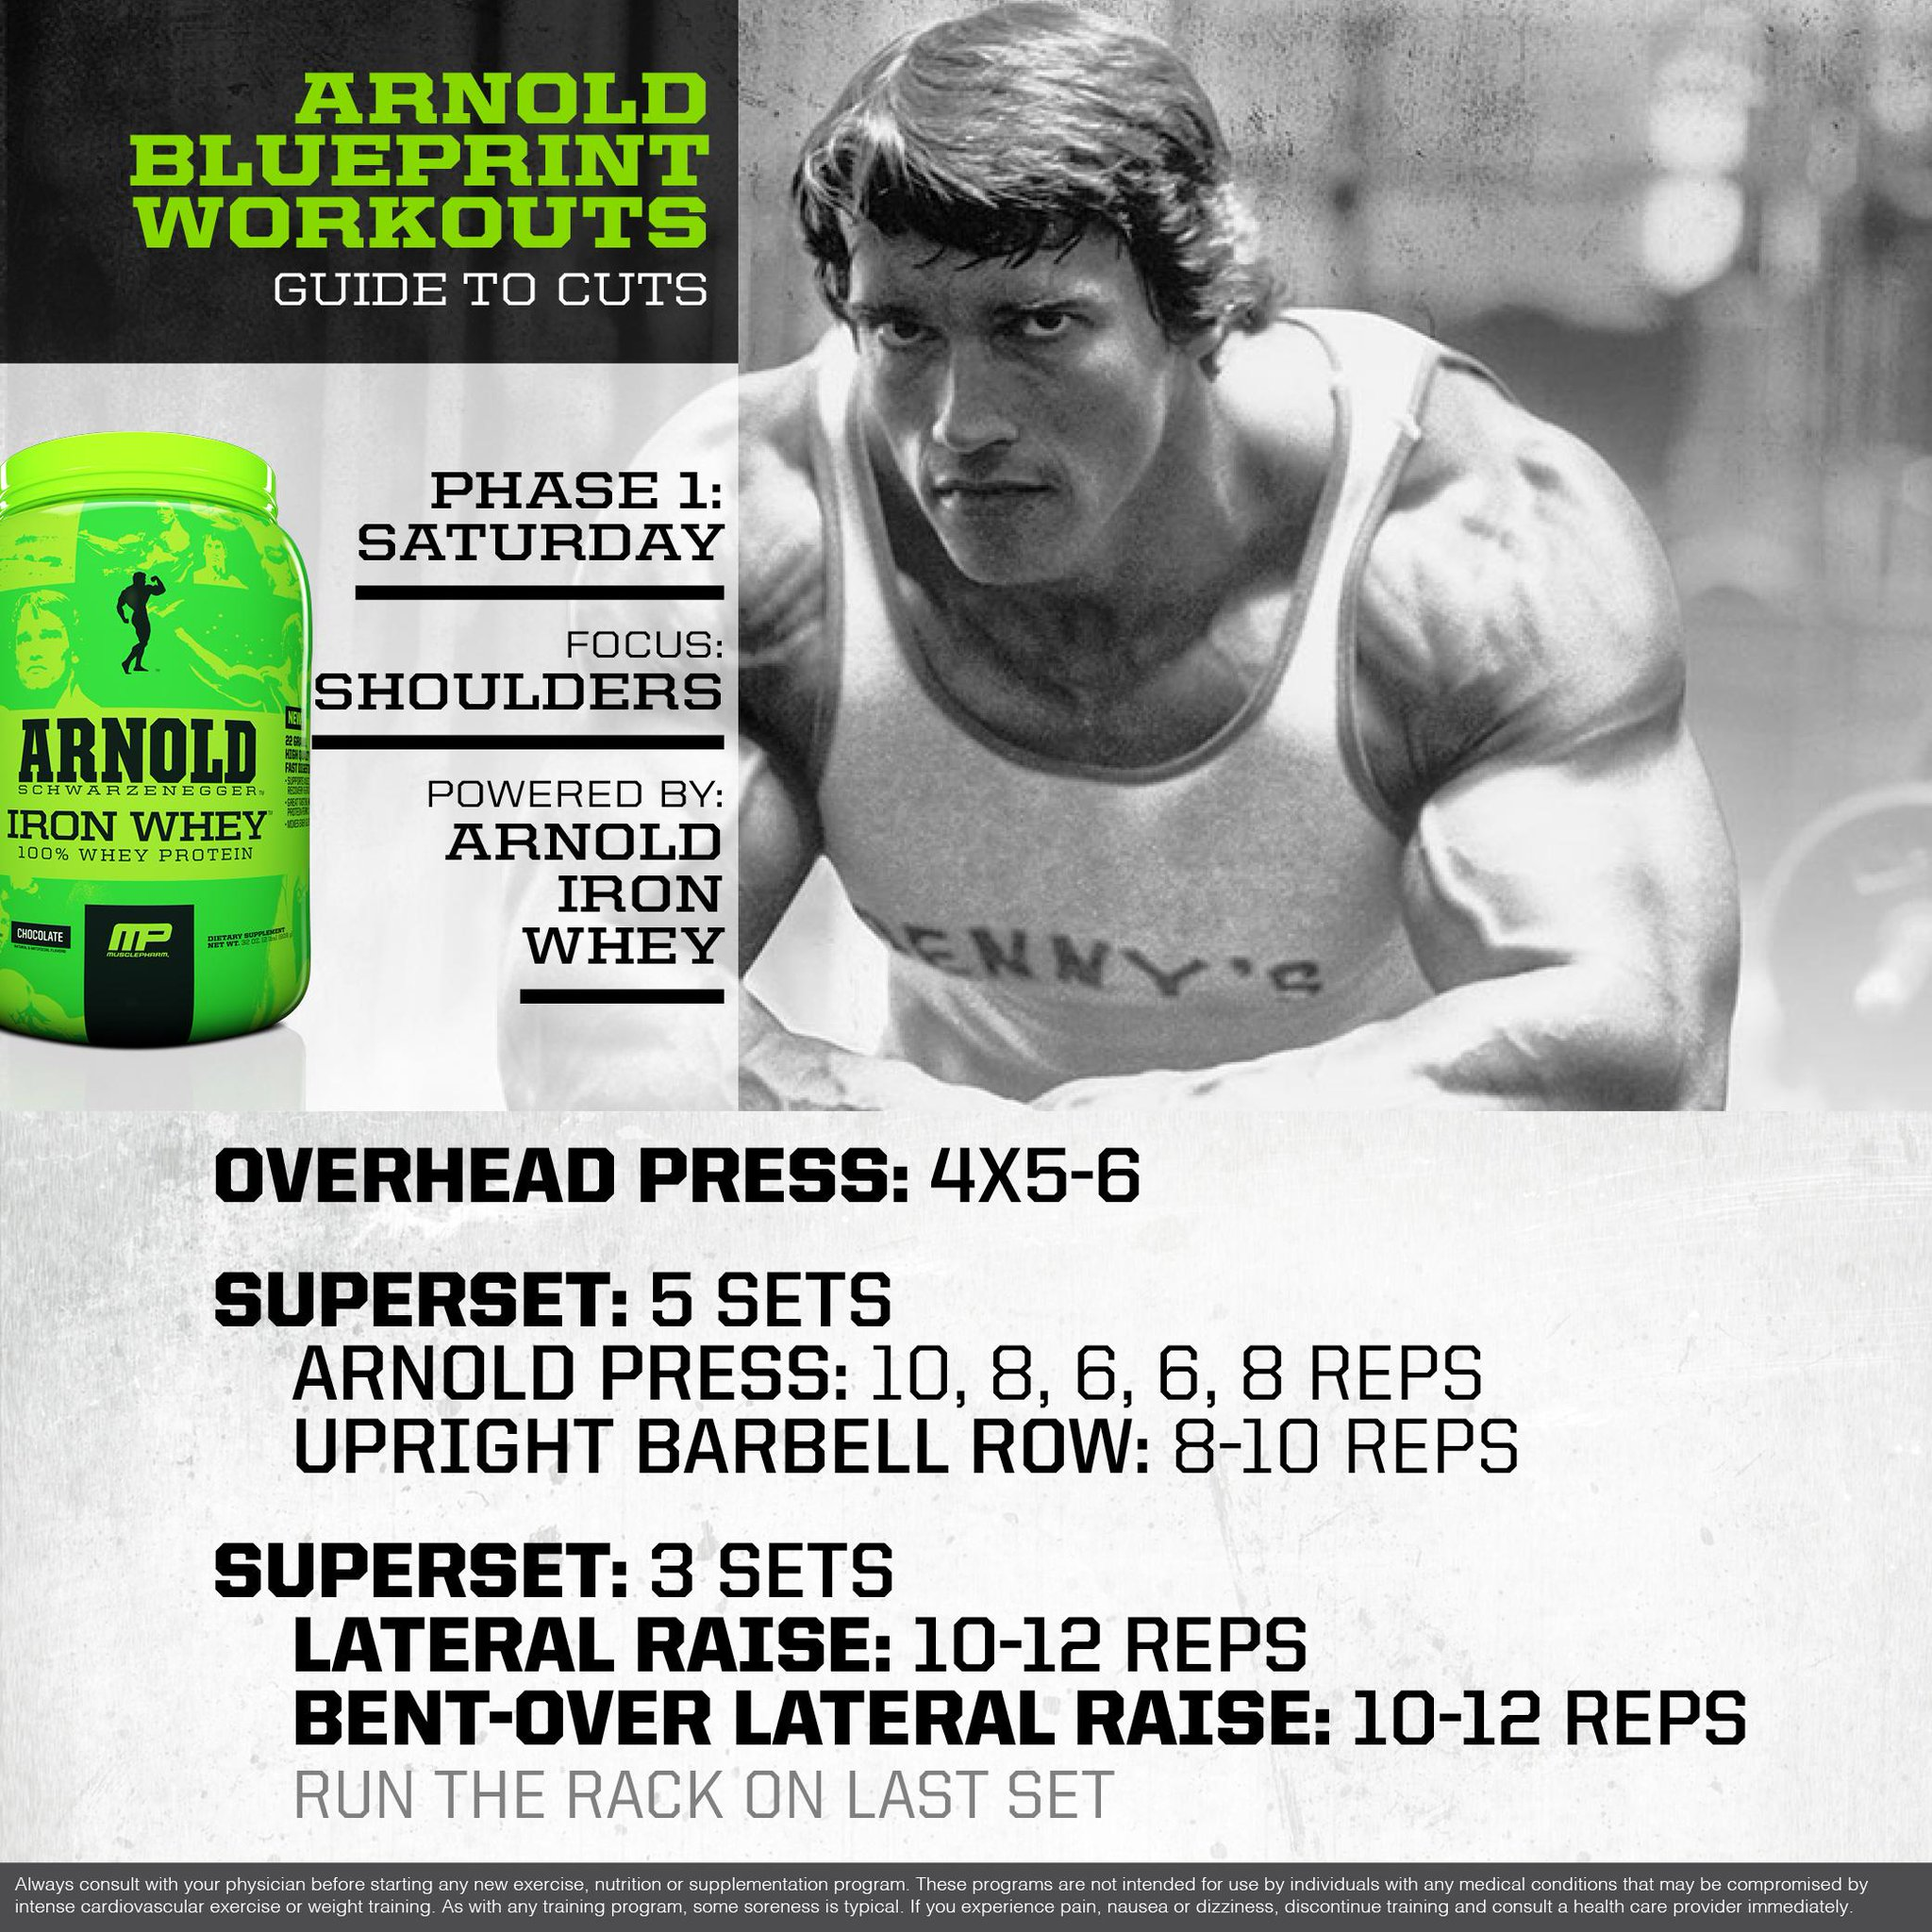 Arnold schwarzenegger muskelpharm blueprint software the following are two typical workouts and split structures used by 7 time mr olympia arnold schwarzenegger this arnold schwarzenegger workout variation malvernweather Choice Image